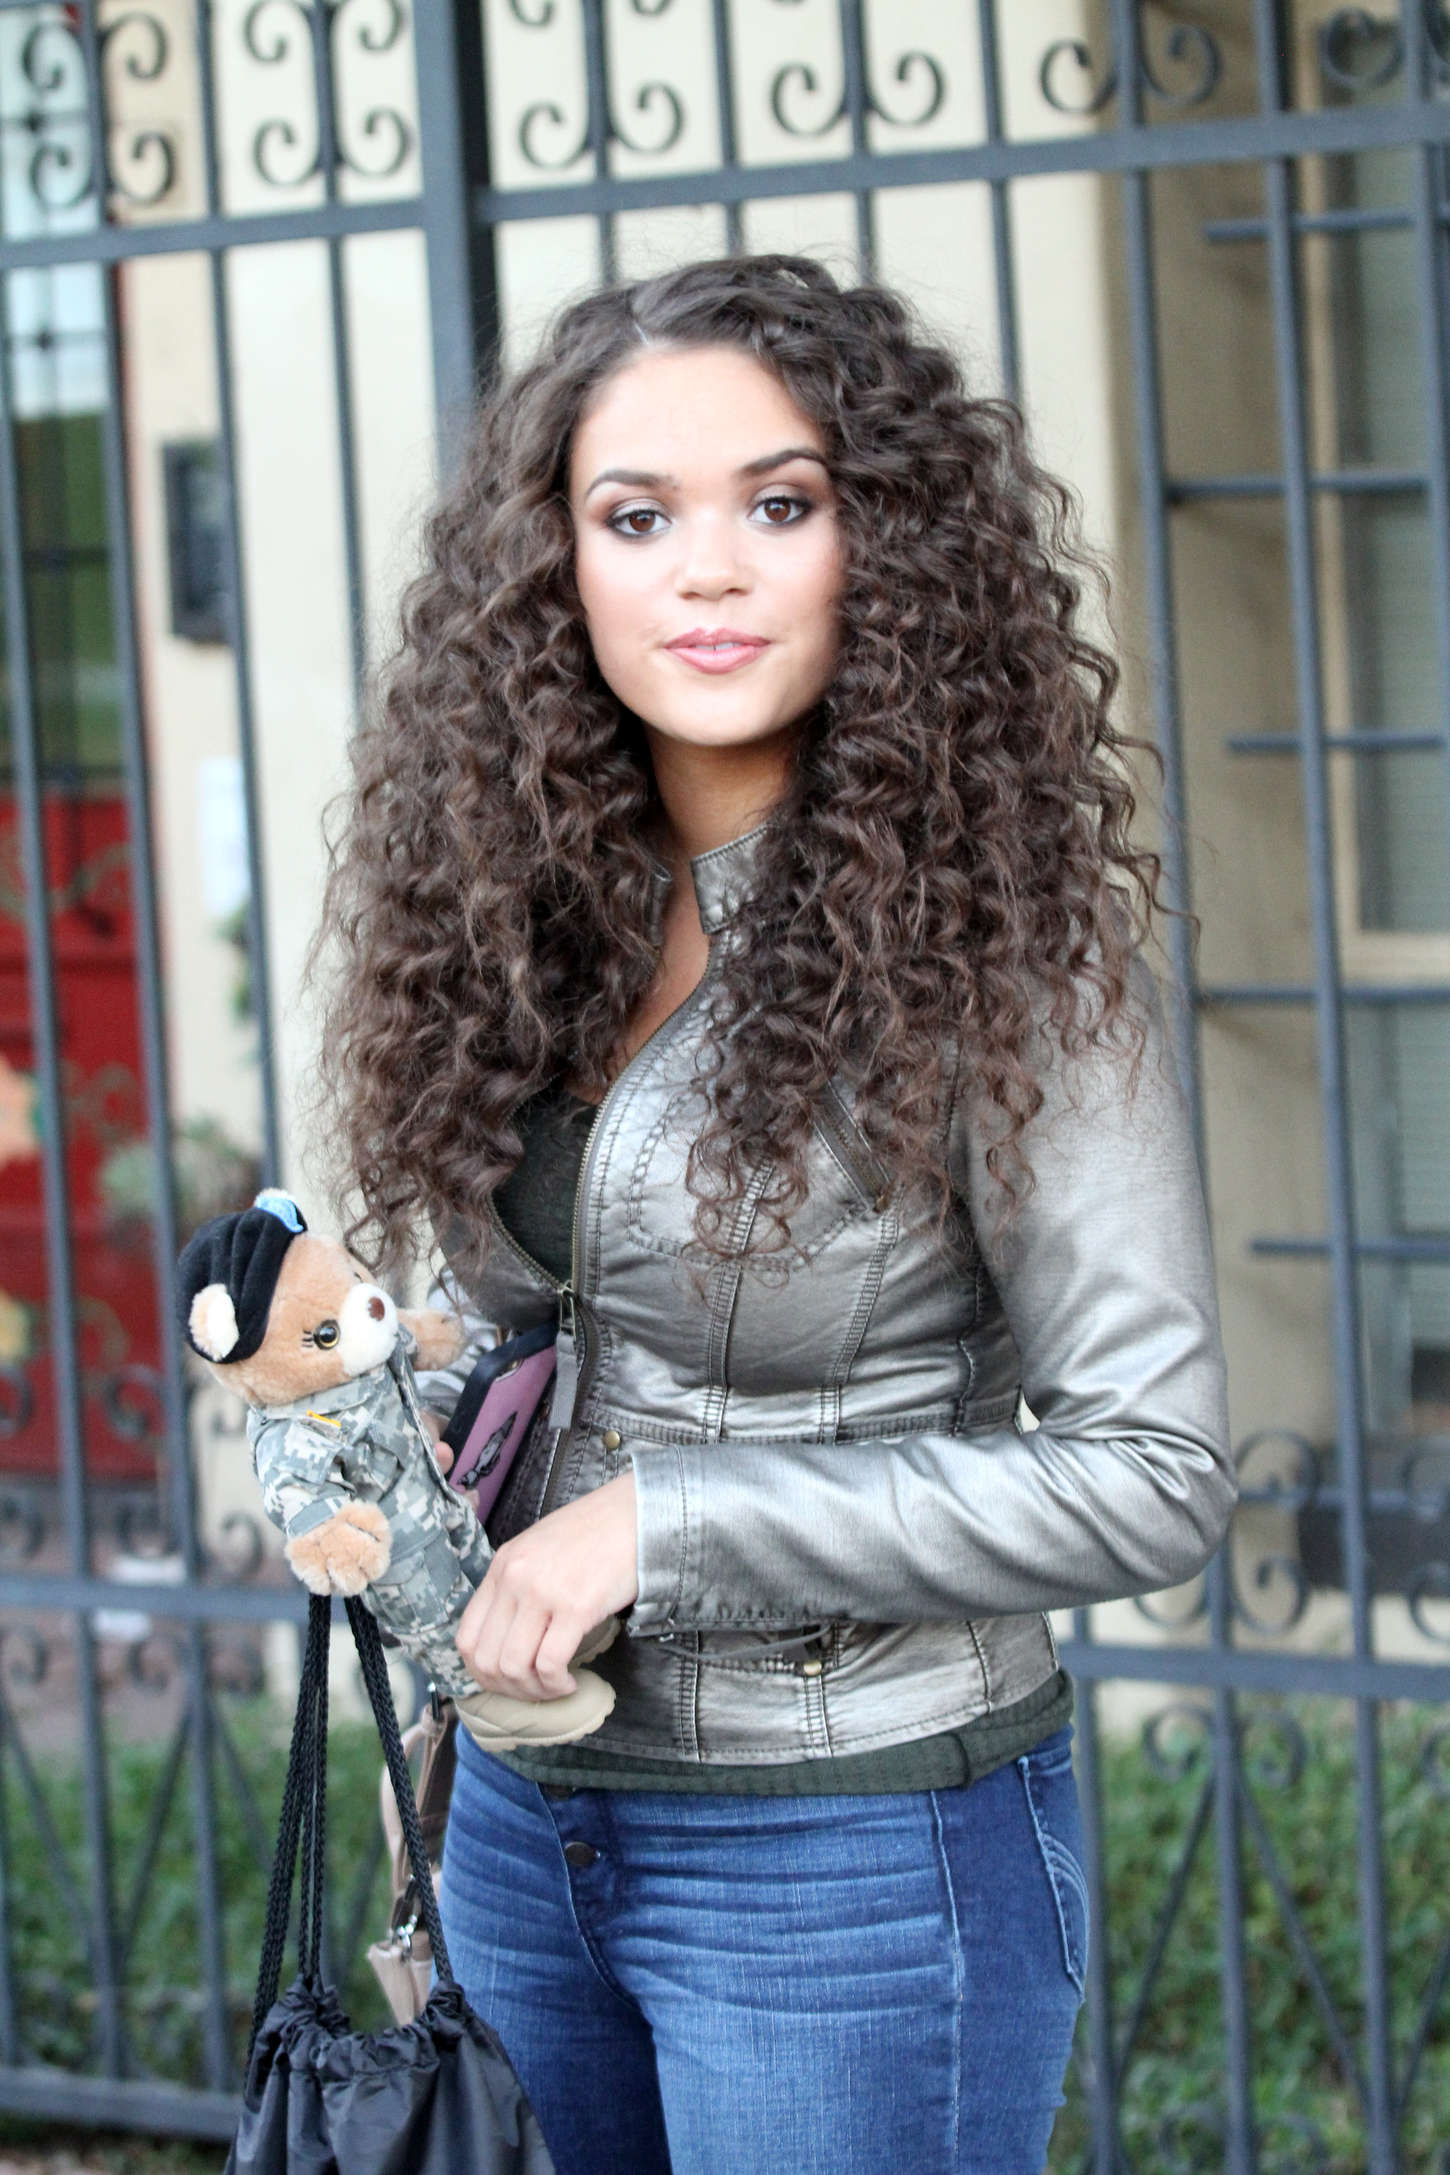 Hot Madison Pettis nudes (58 photos), Tits, Fappening, Feet, braless 2018